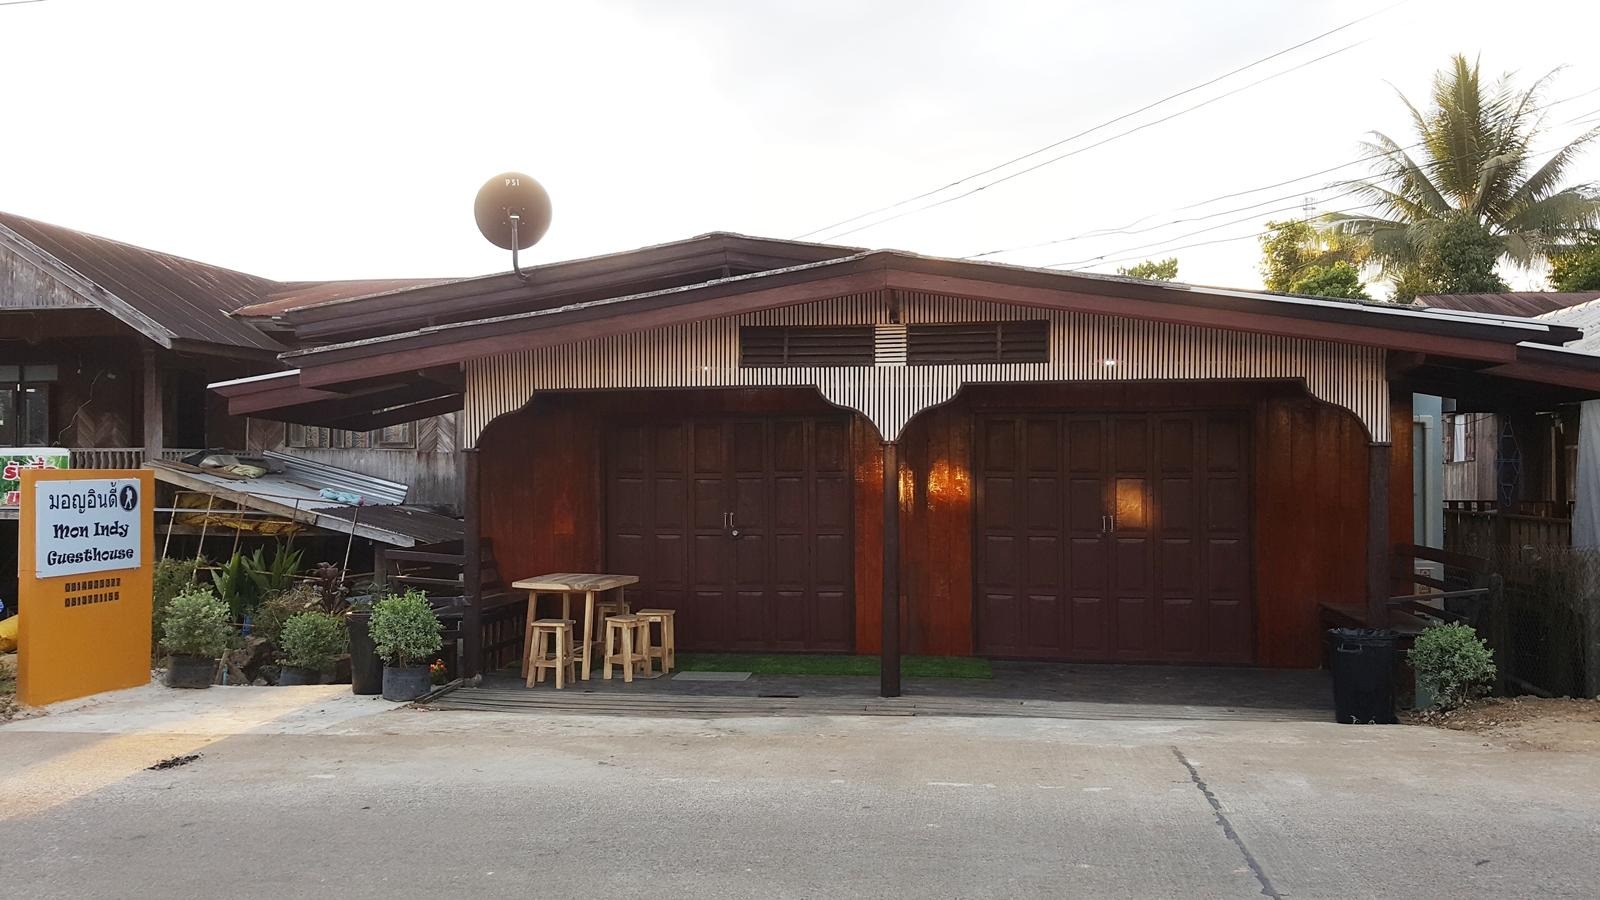 Mon Indy Guesthouse, Sangkhla Buri